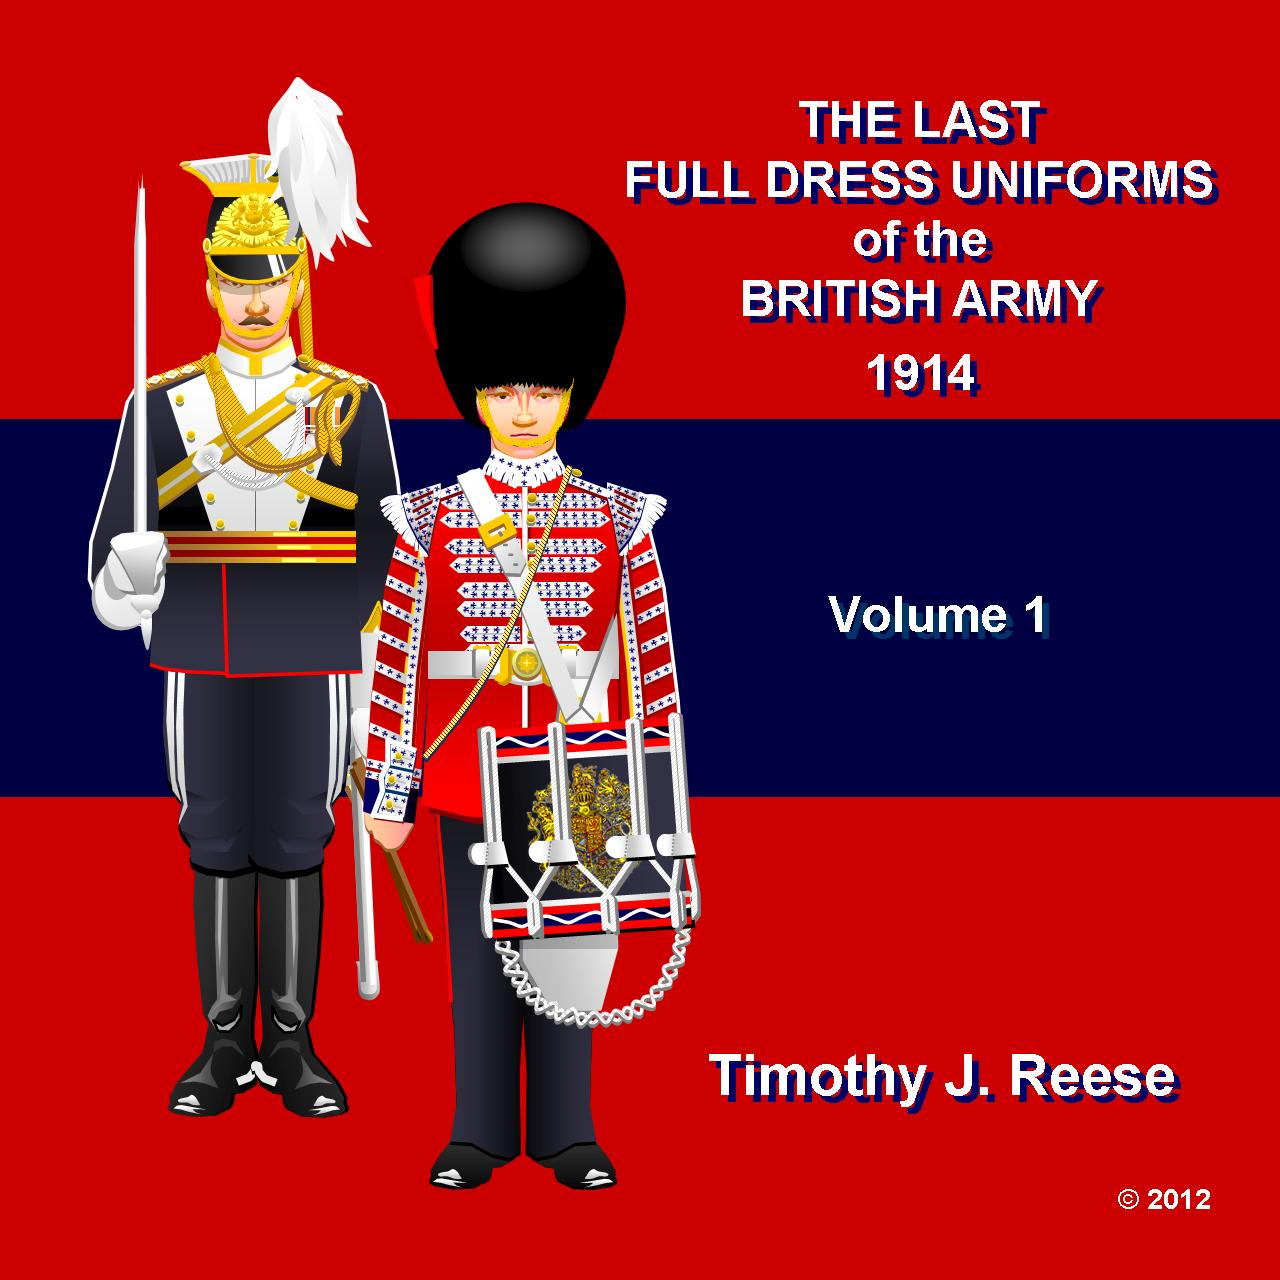 SAMPLE PLATE: The Last Full Dress Uniforms of the British Army, 1914, Volume 1